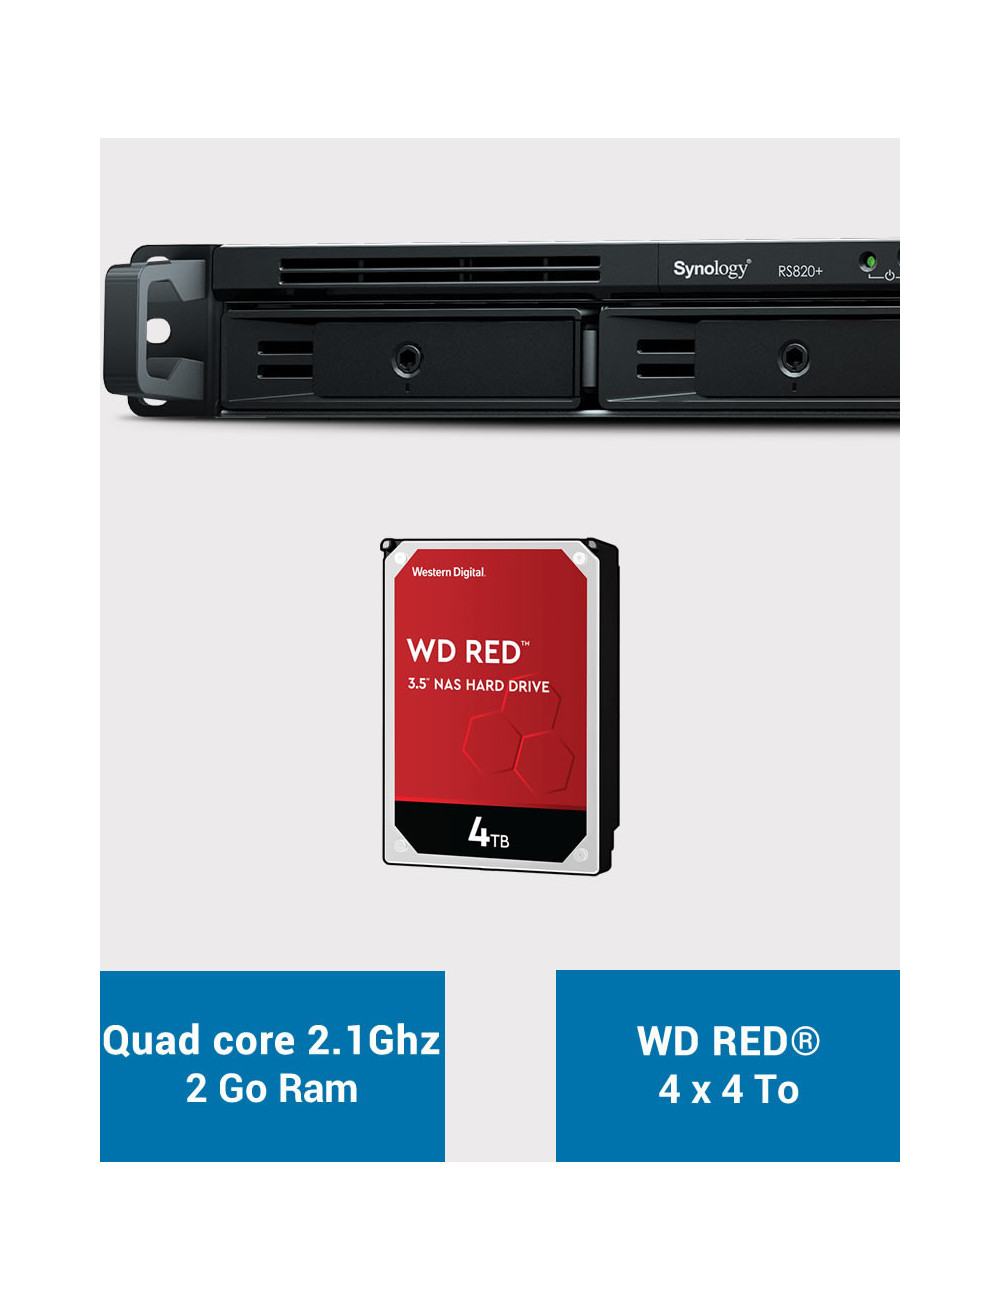 Synology RS820+ Serveur NAS WD RED 16To (4x4To)